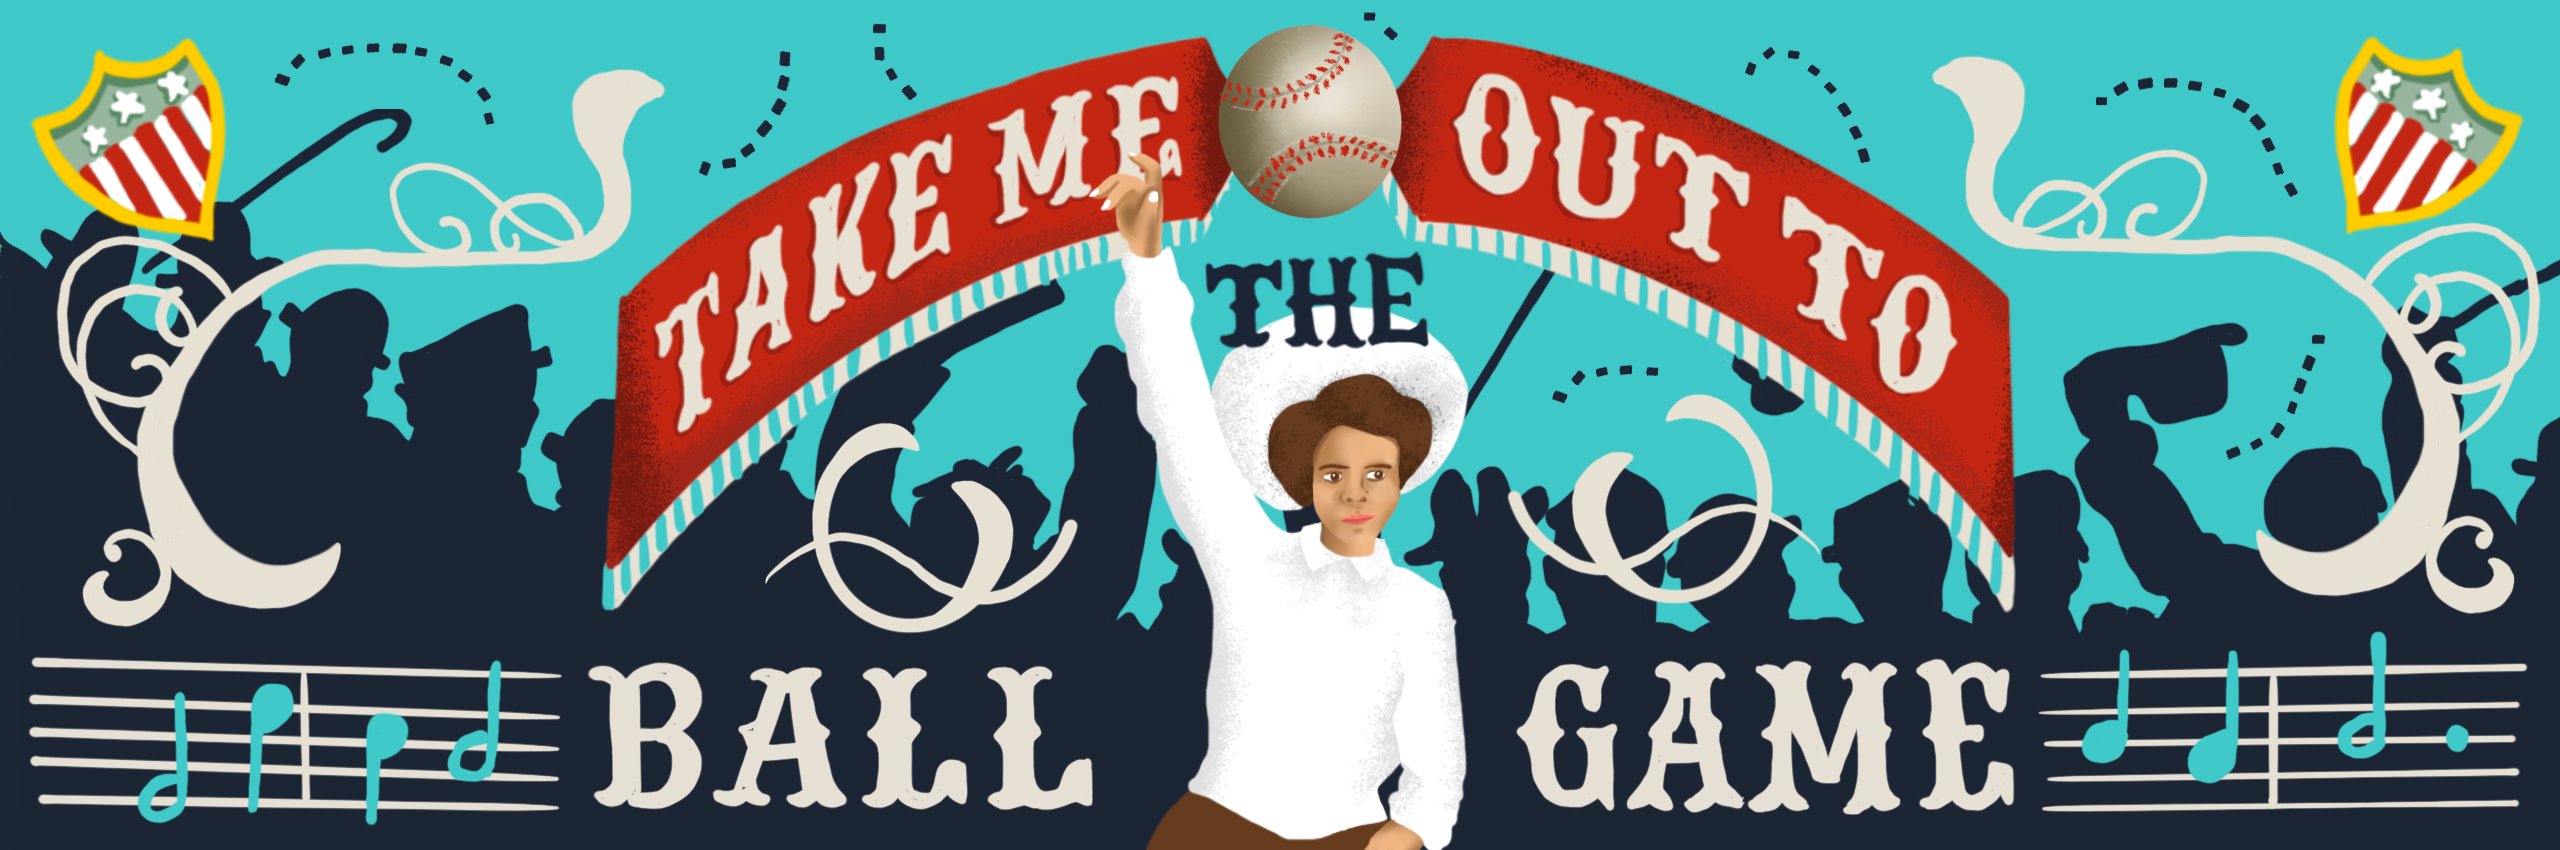 Take me out to the ball came and woman fan illustrated.